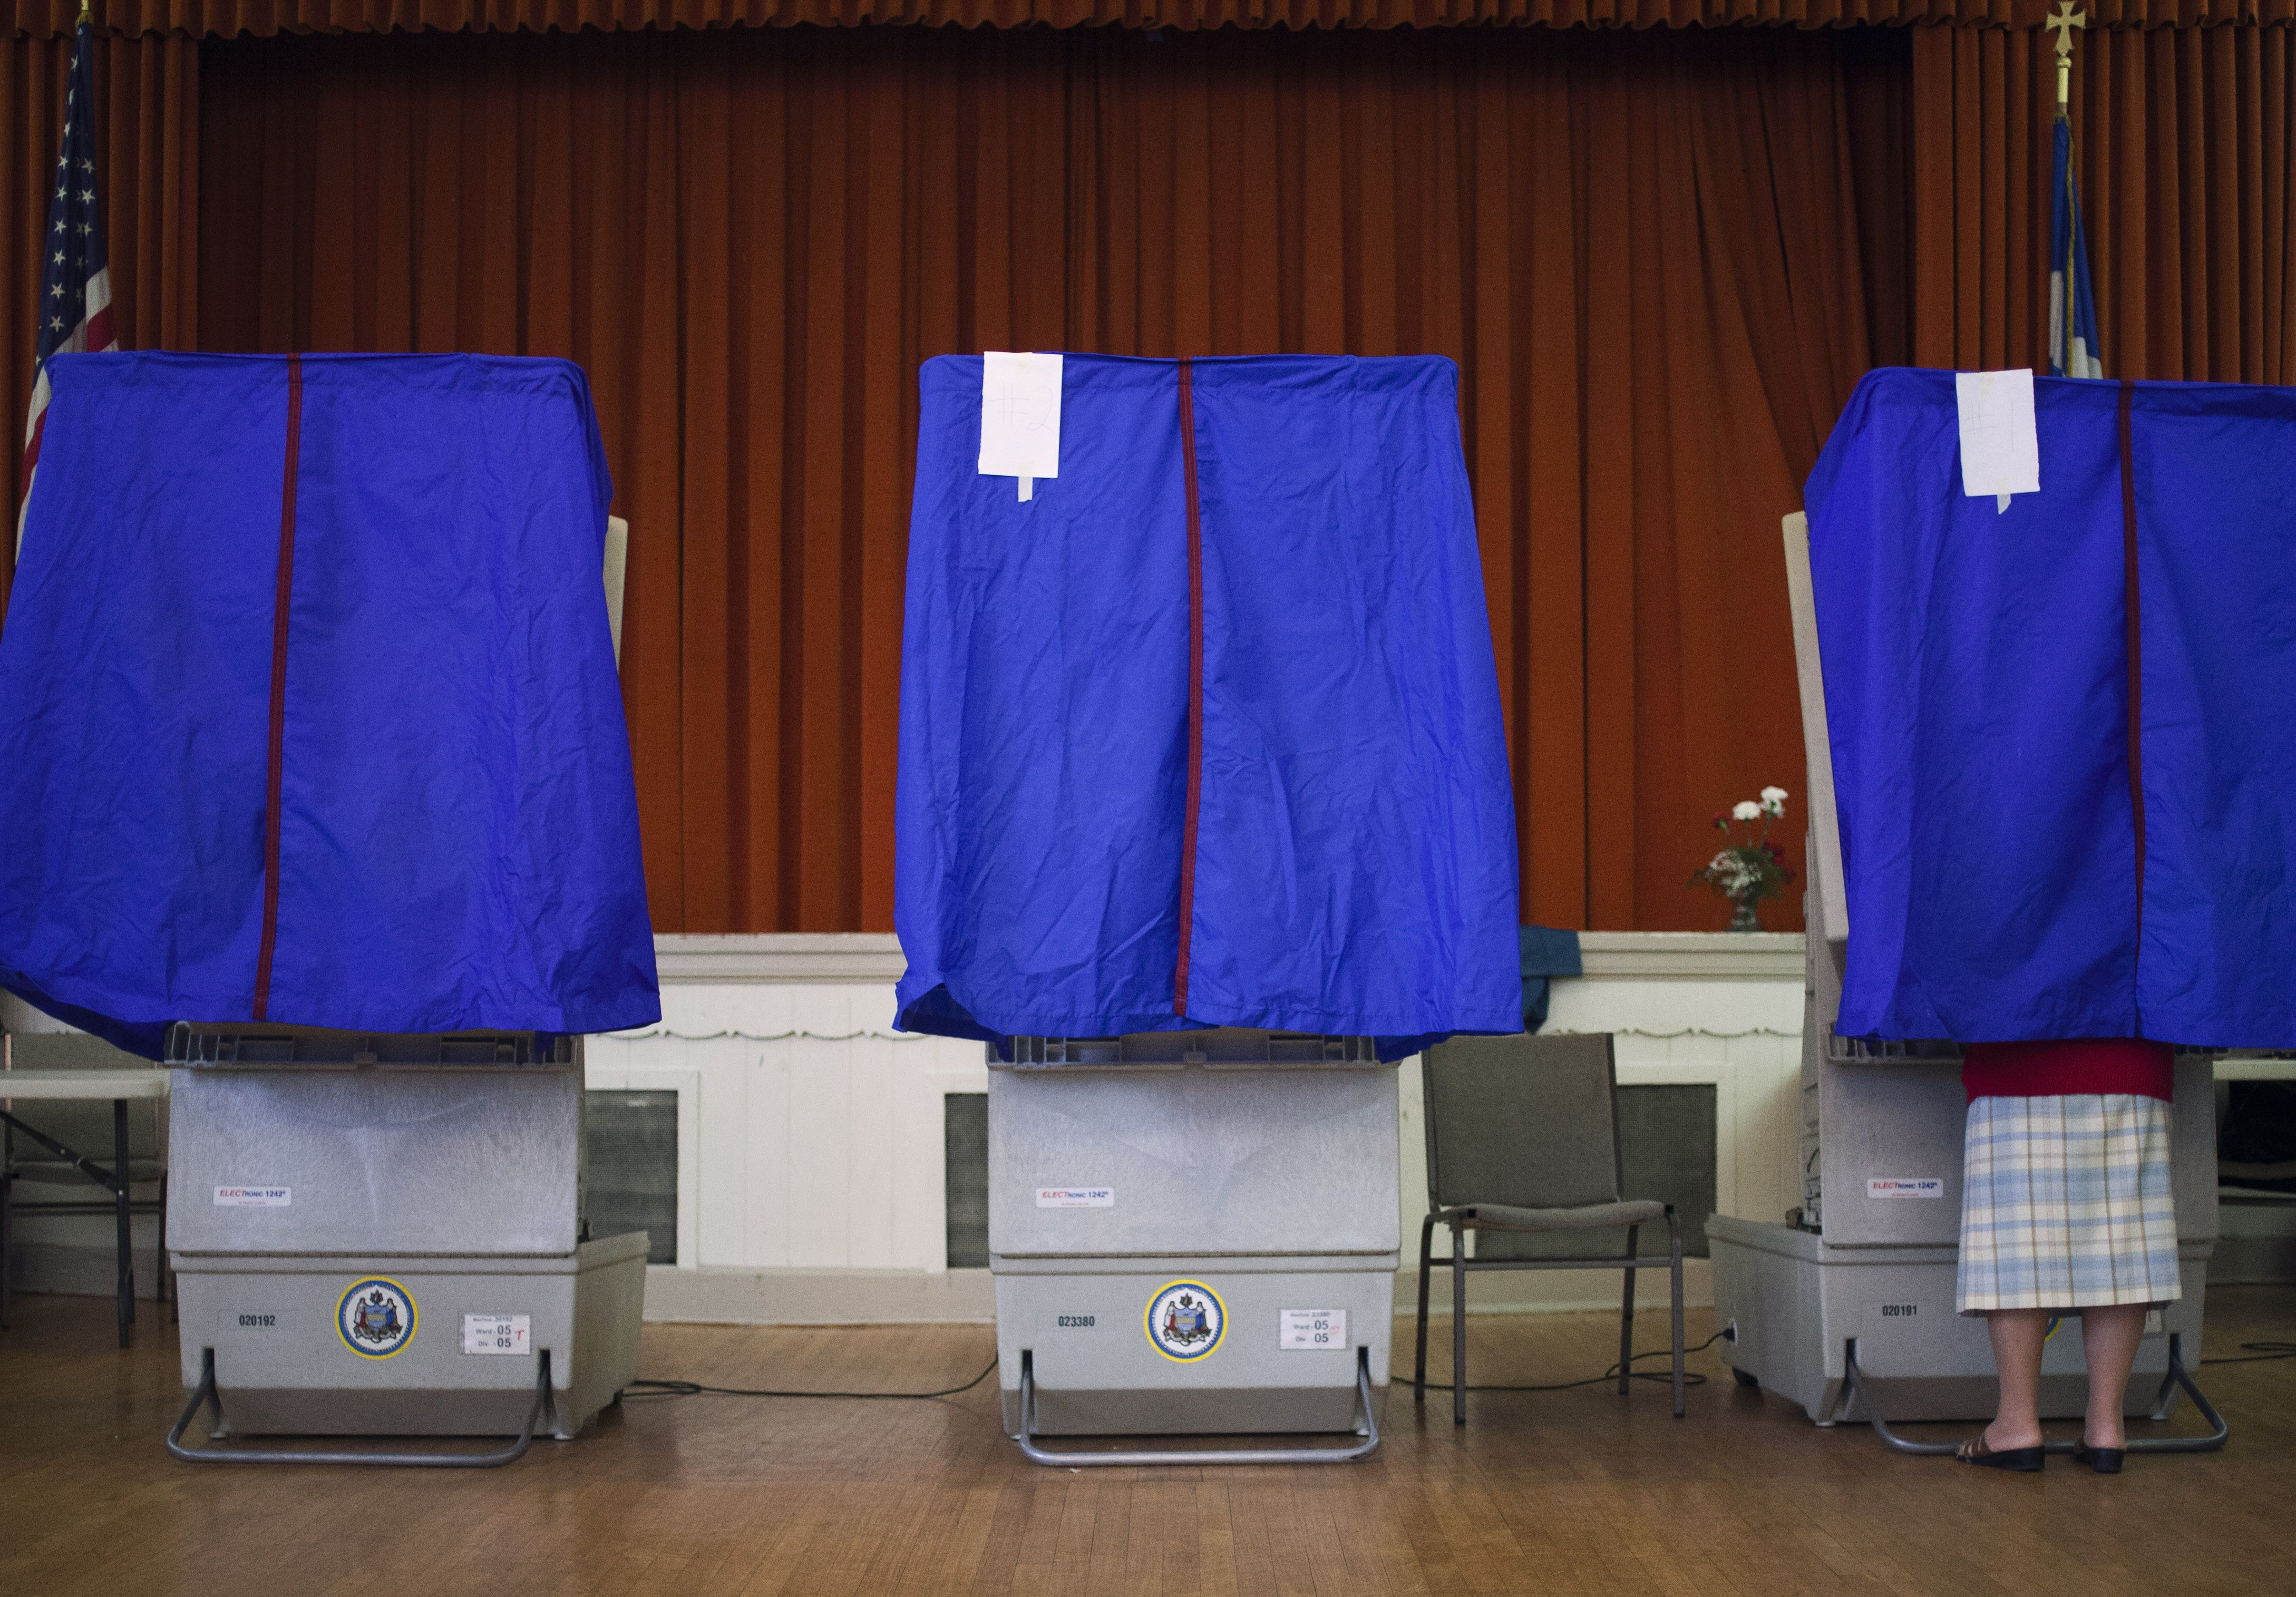 A voter casts her ballot in a voting booth during the Pennsylvania Republican presidential primary in April 2012 in Philadelphia